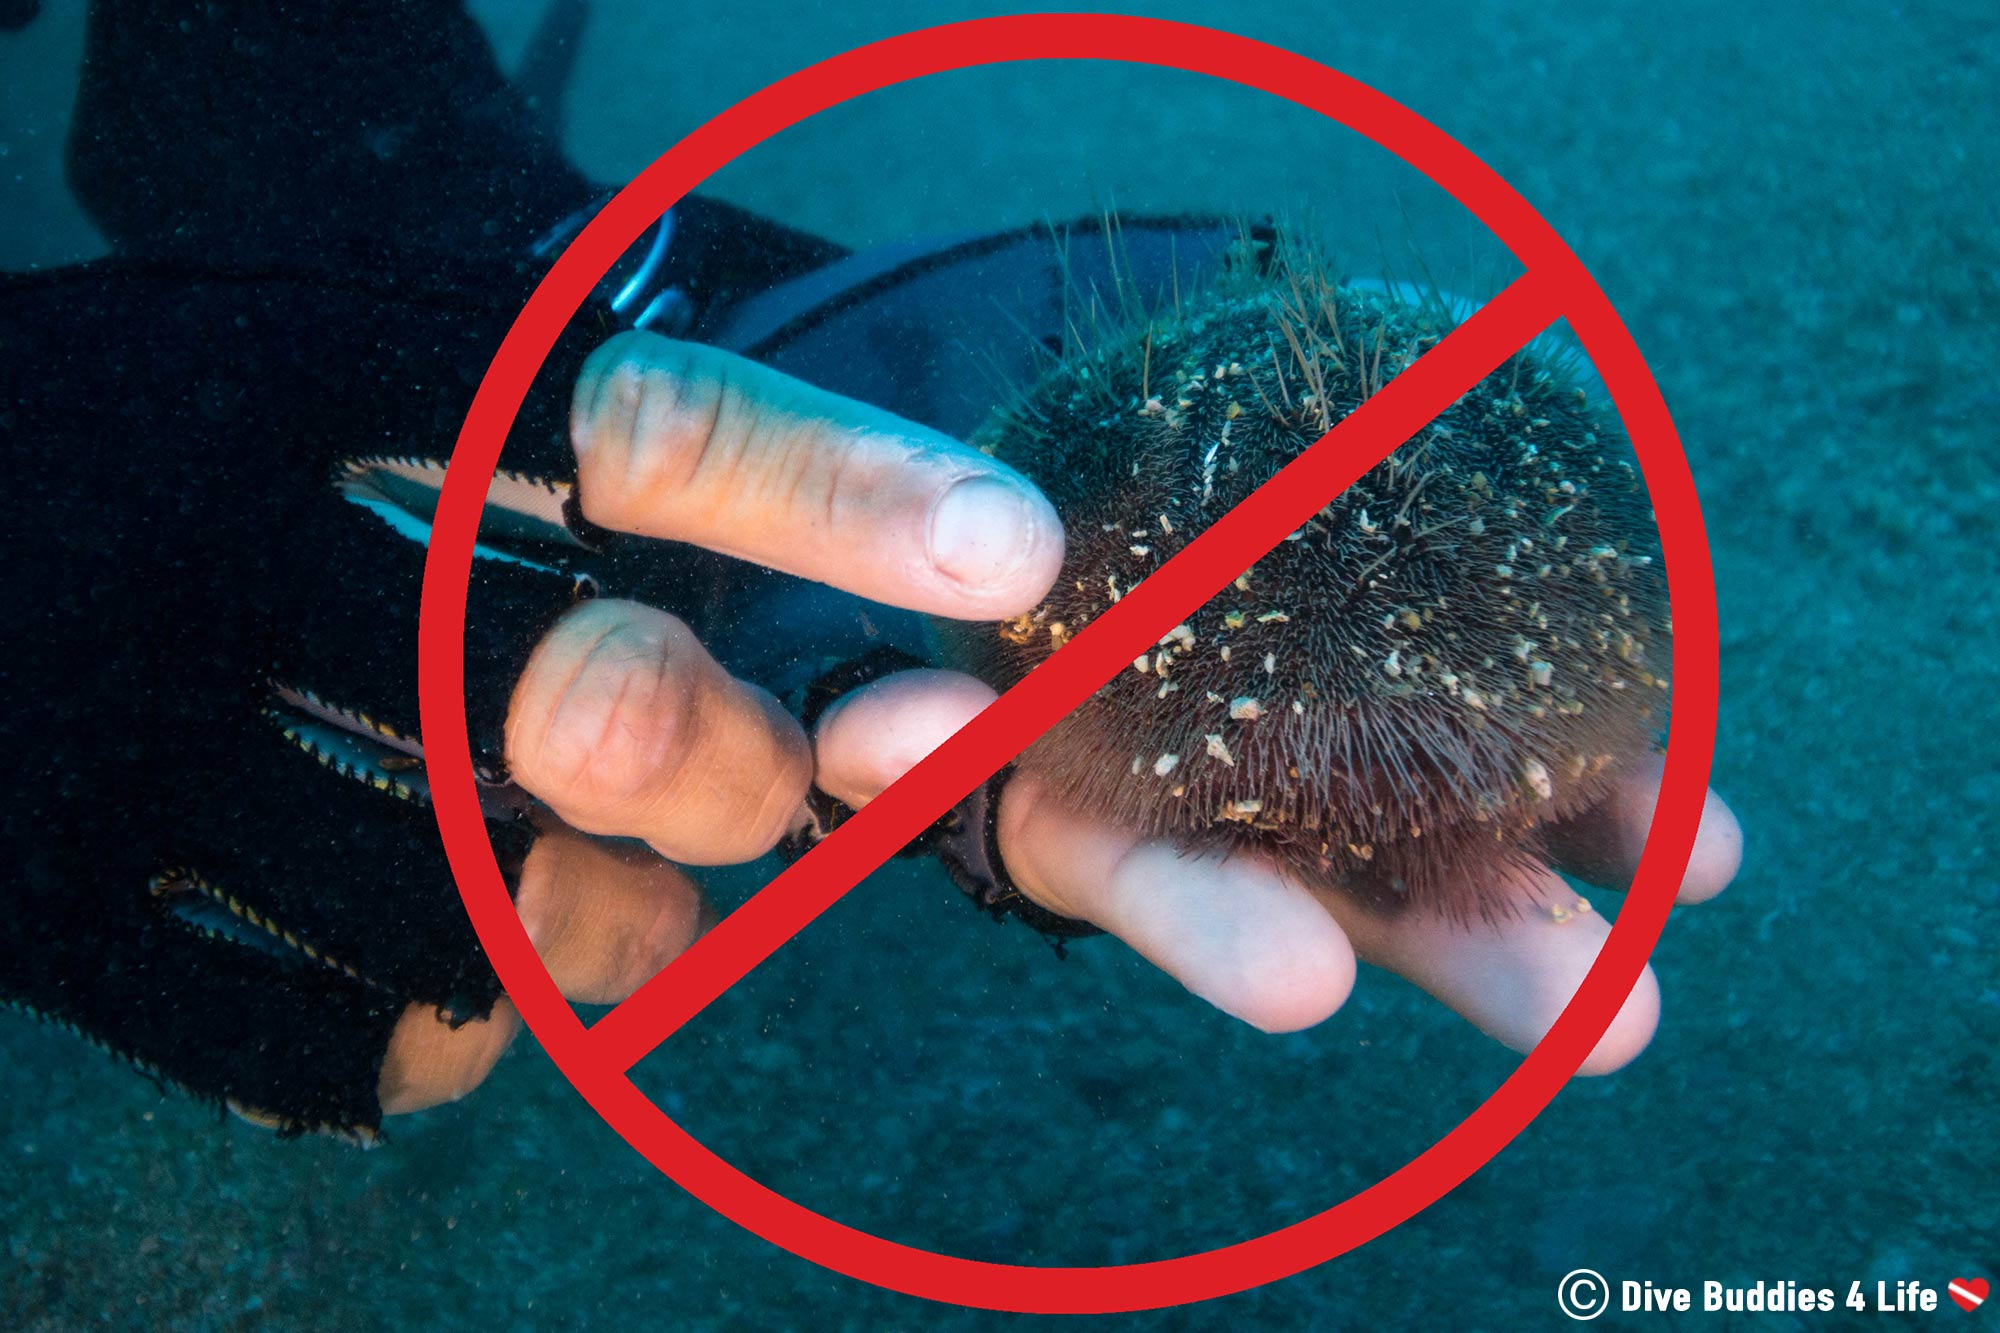 Don't Touch The Creatures, A Hand Holding And Touching A Sea Urchin